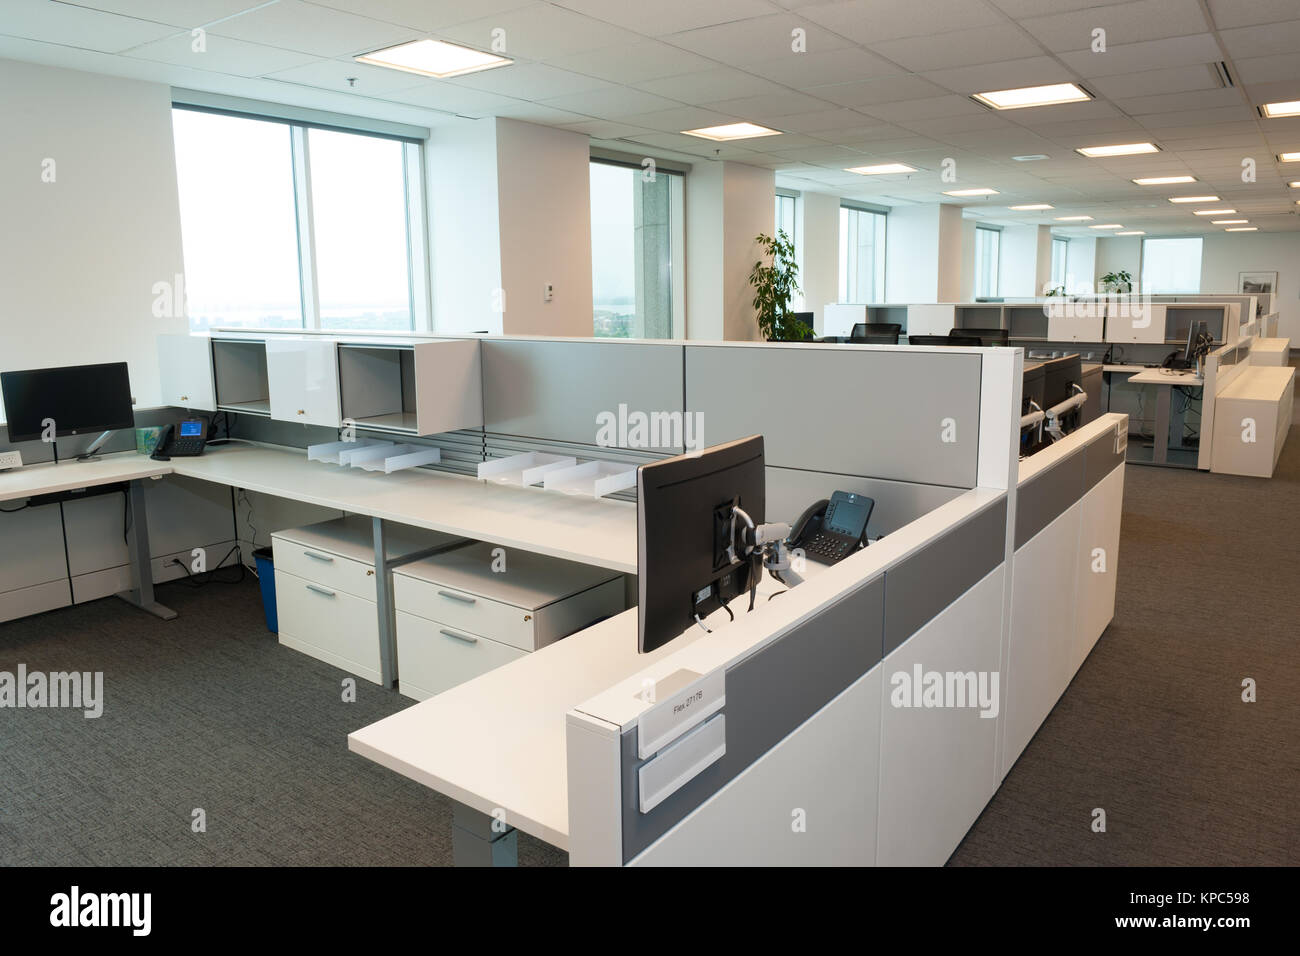 Open concept office interior. - Stock Image